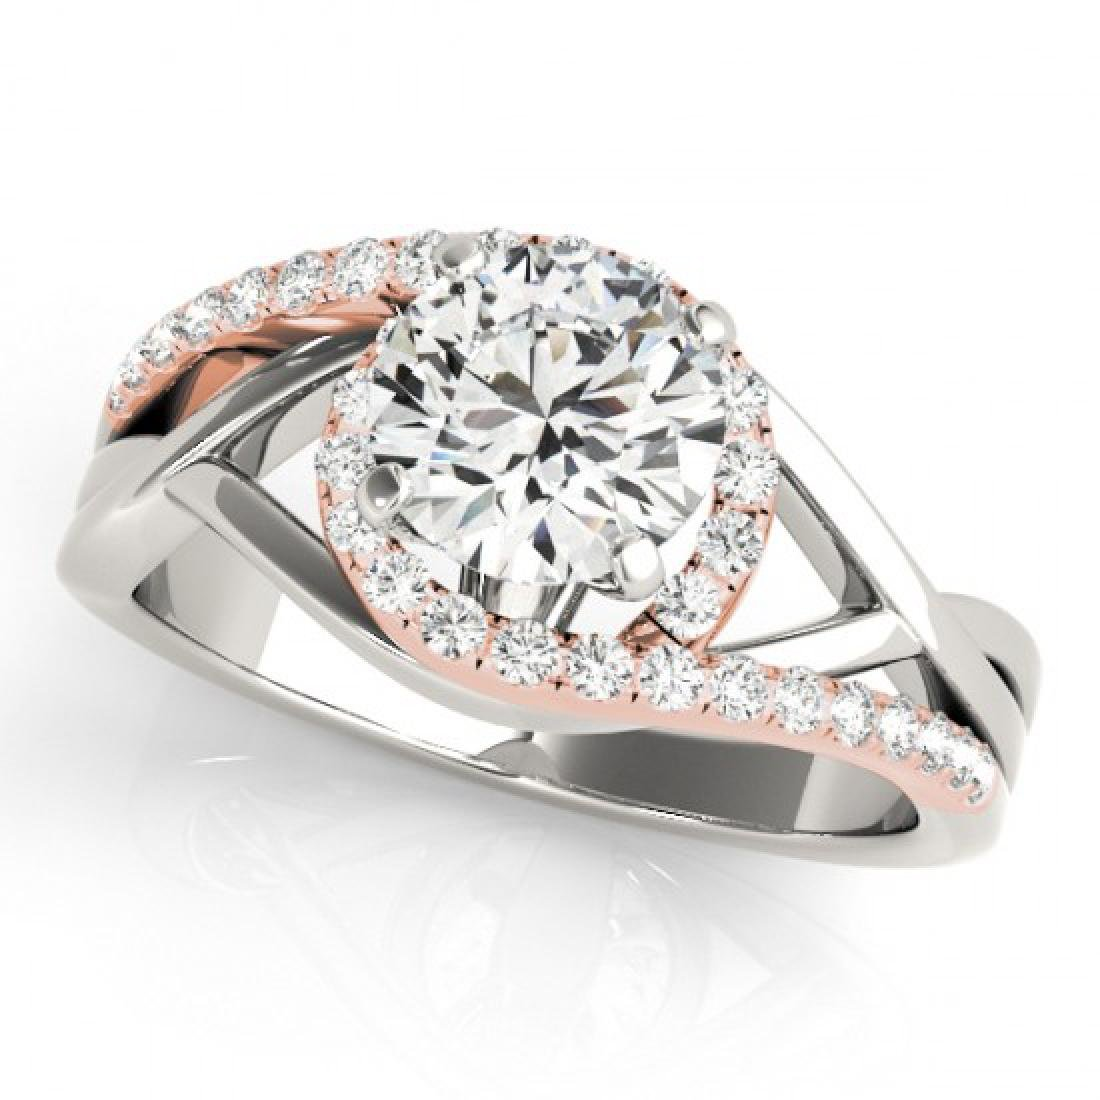 1.55 CTW Certified VS/SI Diamond Bypass Solitaire Ring